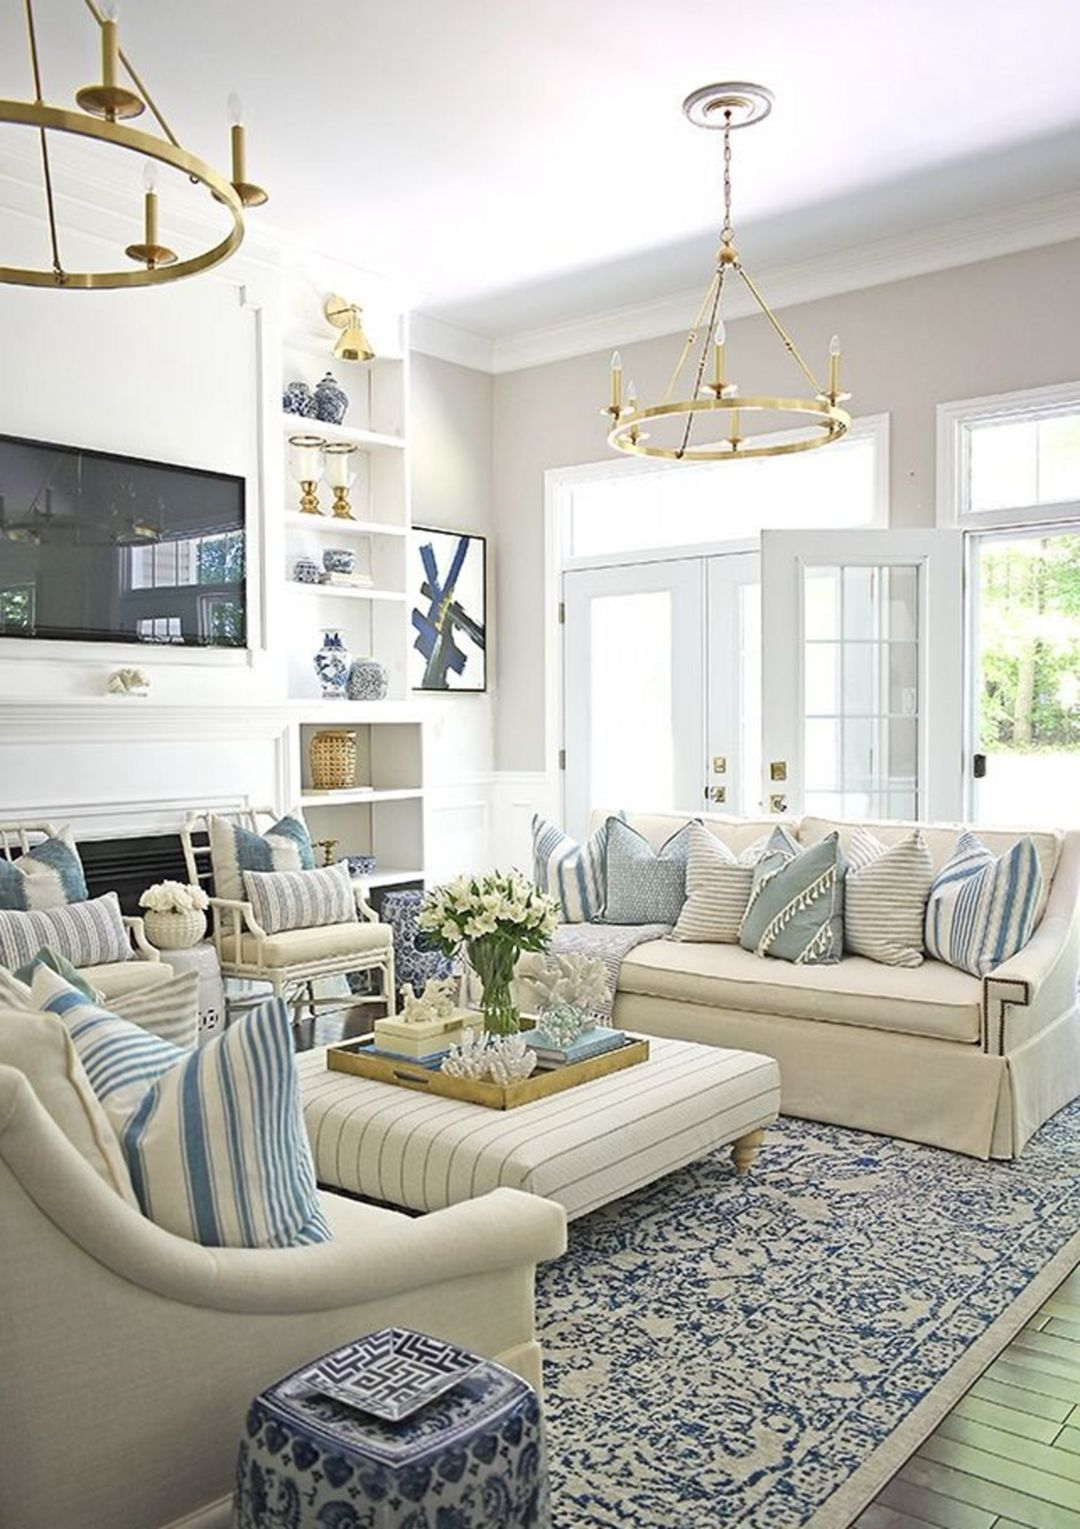 9 Cozy Summer Living Room Decorating Ideas for You to See